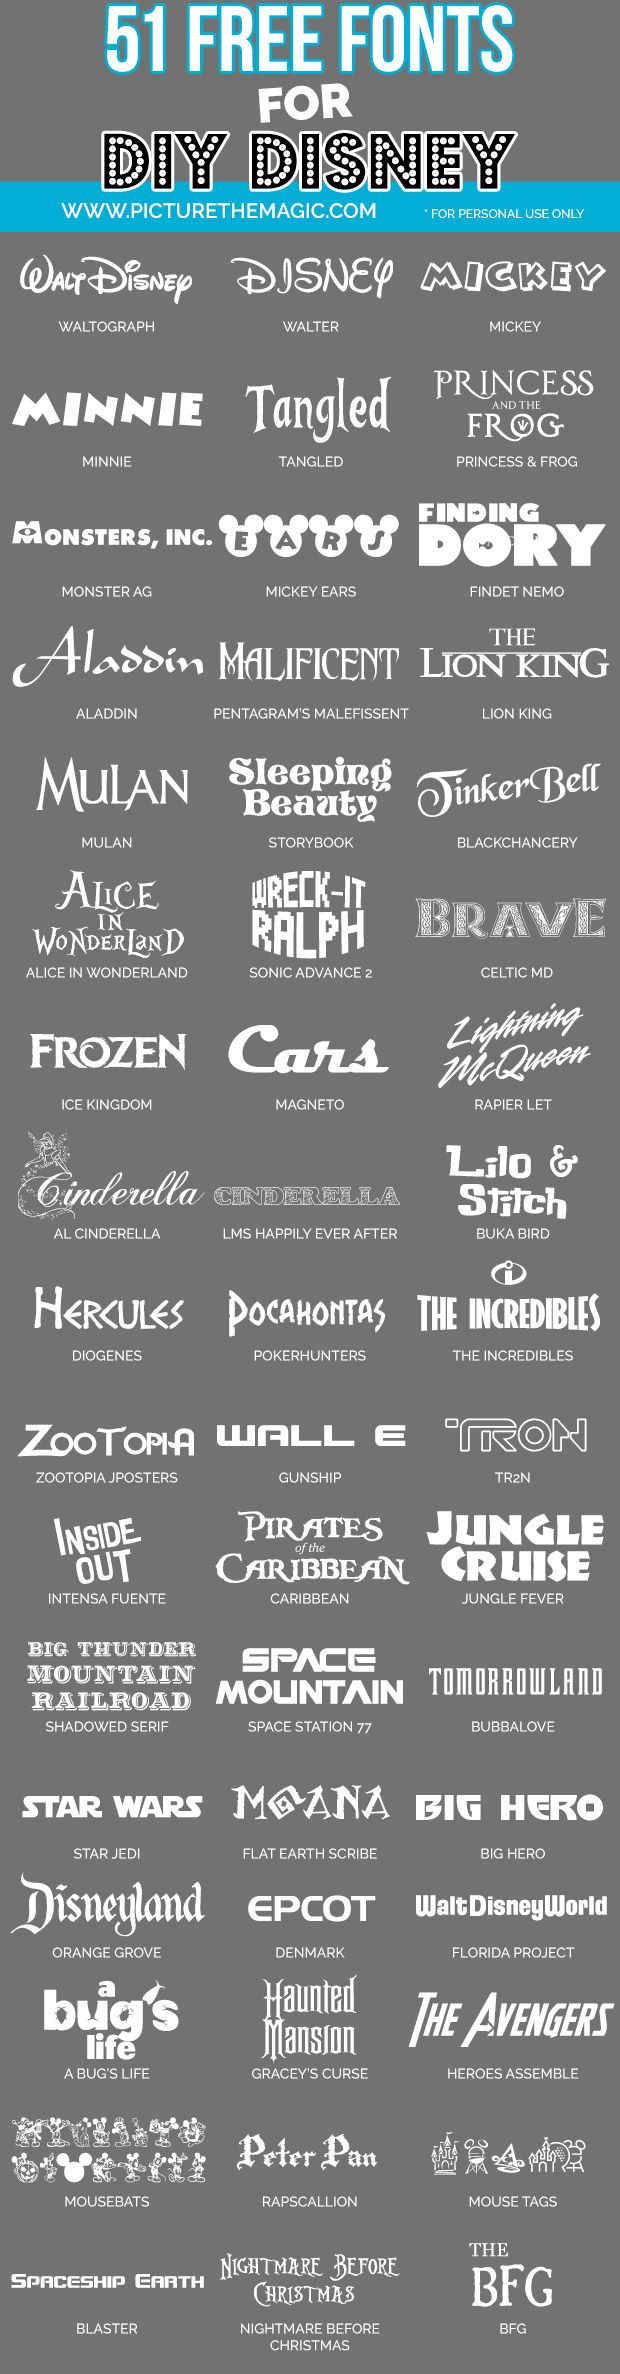 best Disney college program images on Pinterest All alone